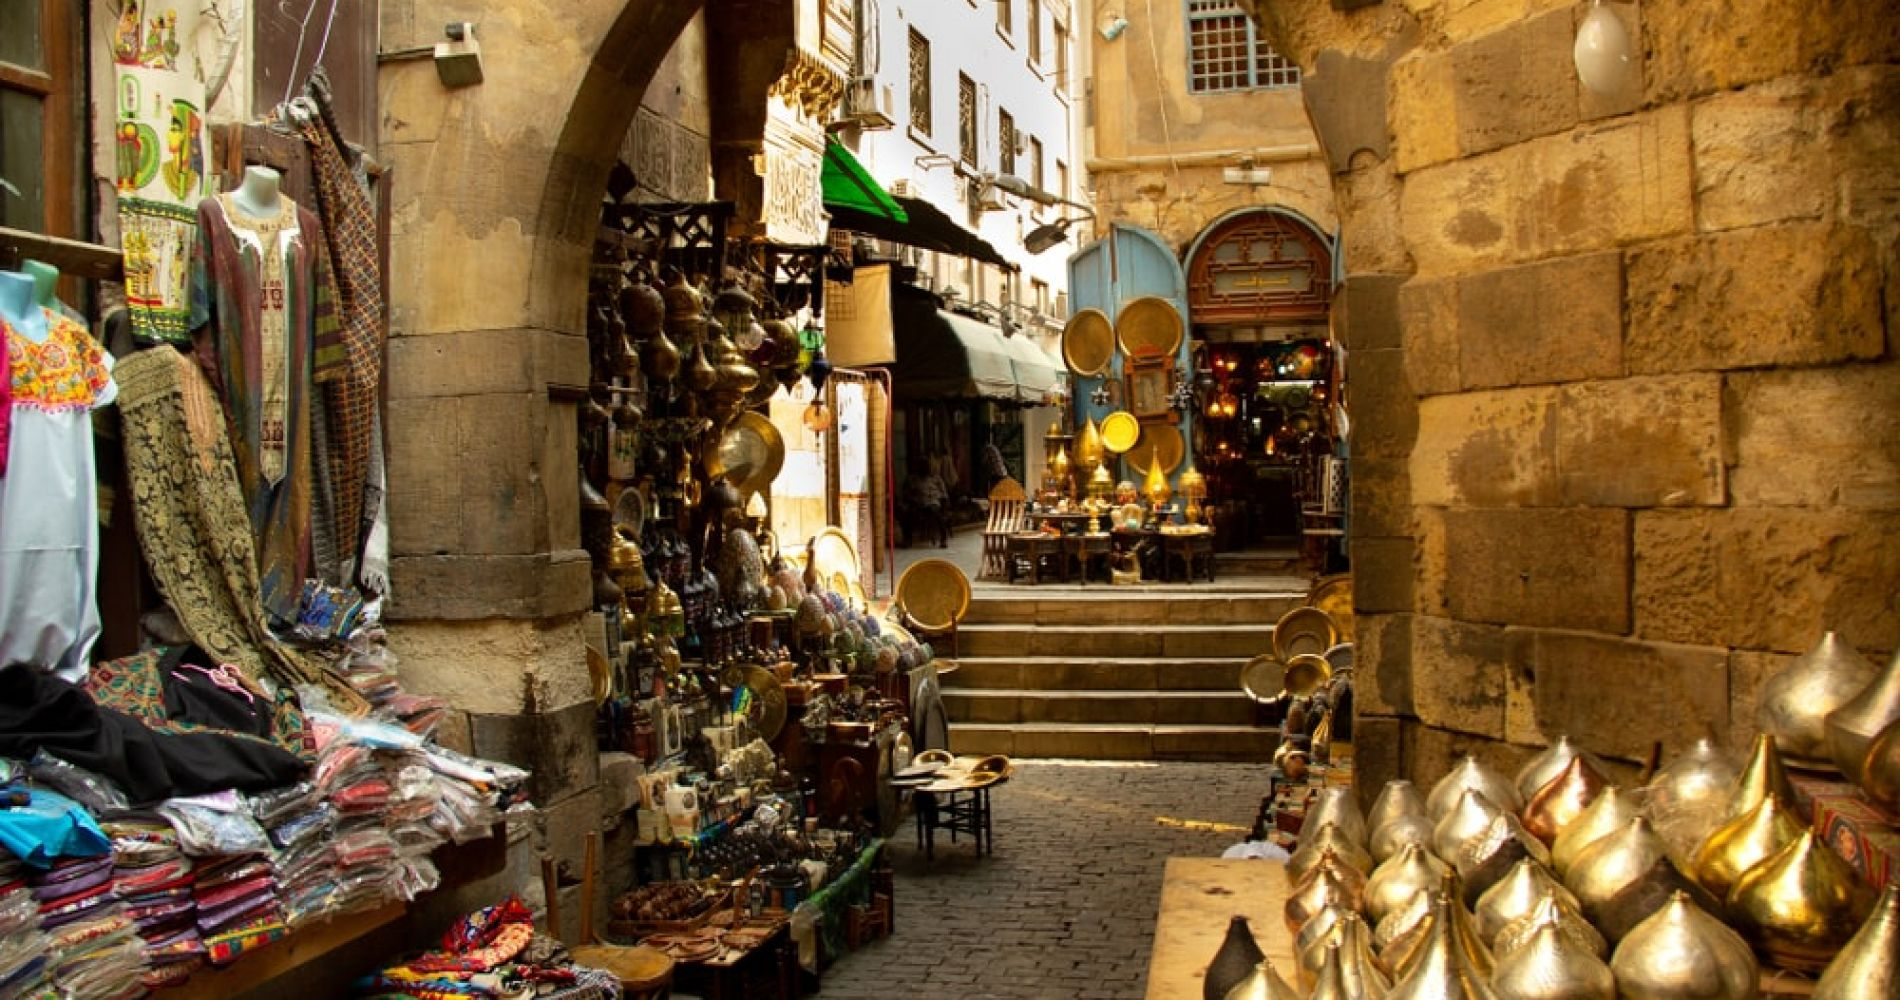 Explore the Khan el-Khalili Bazaar in Cairo